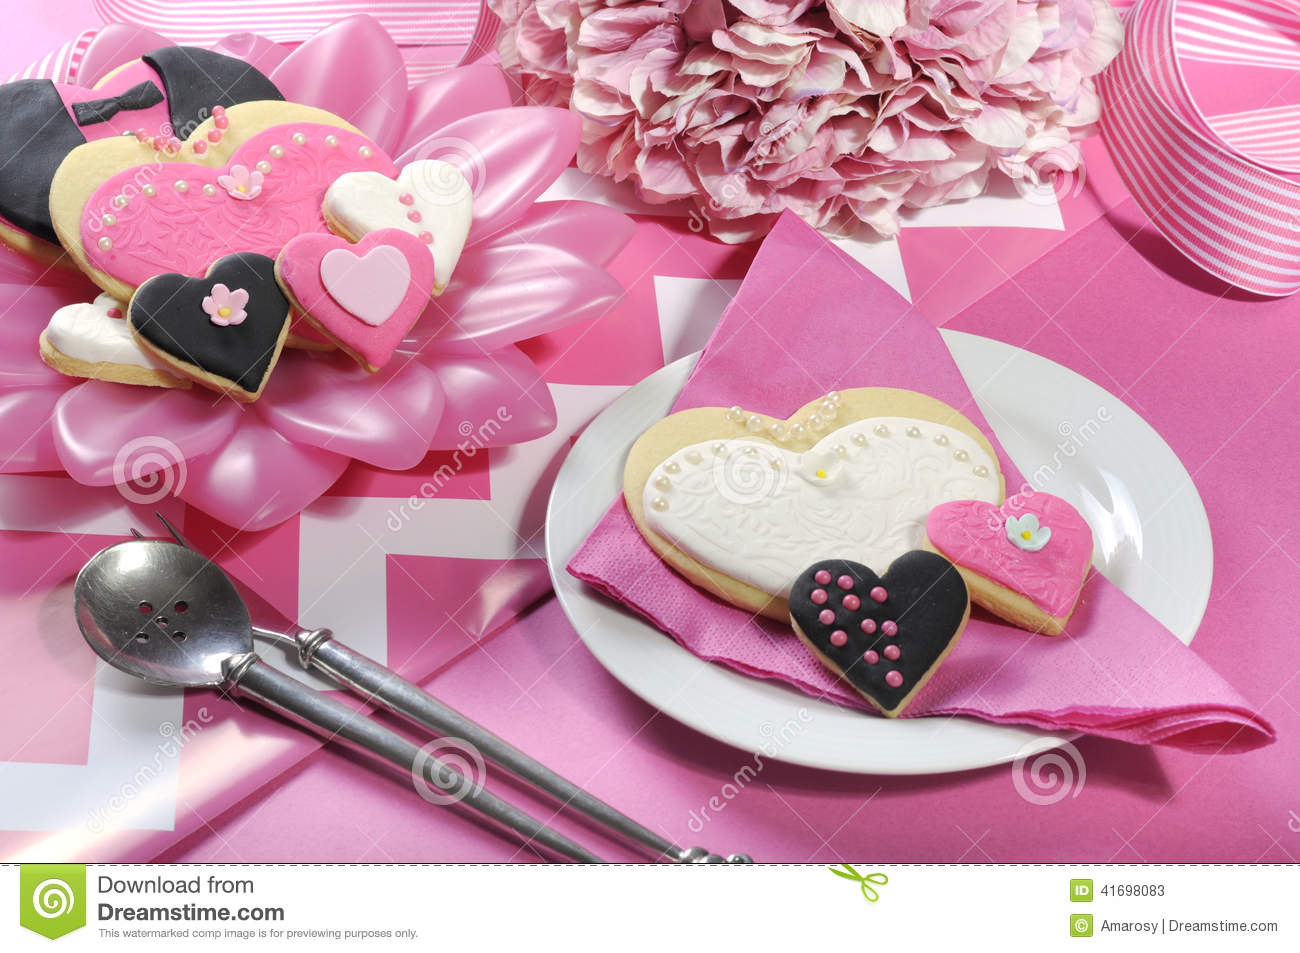 Wedding Cookies On Pink Bridal Table Stock Image - Image of favor ...